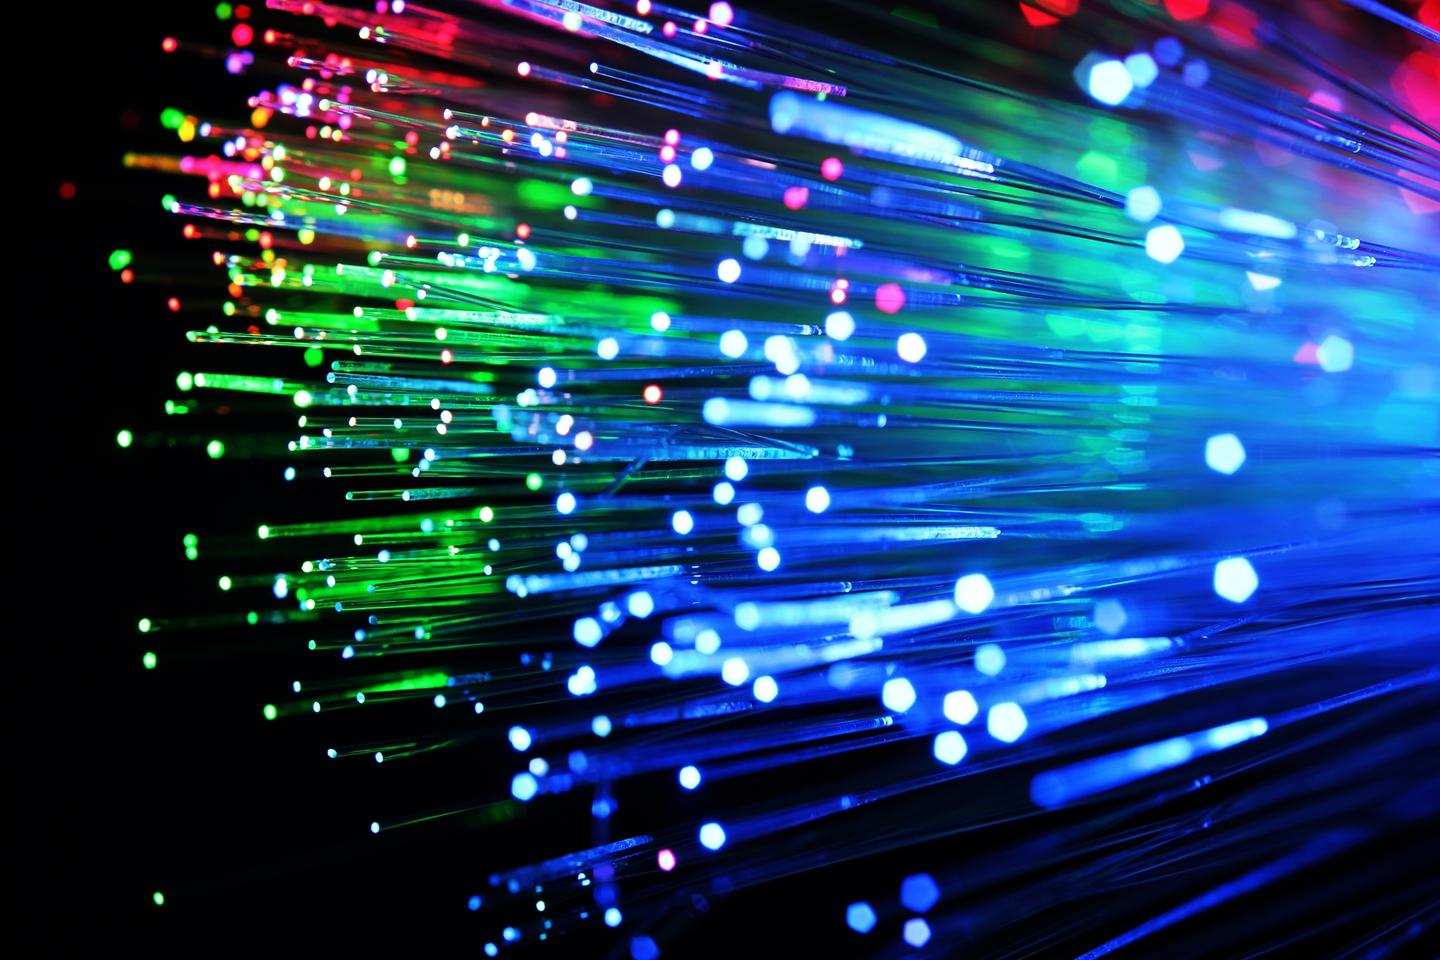 The US Department of Energy has unveiled plans to develop a national quantum internet